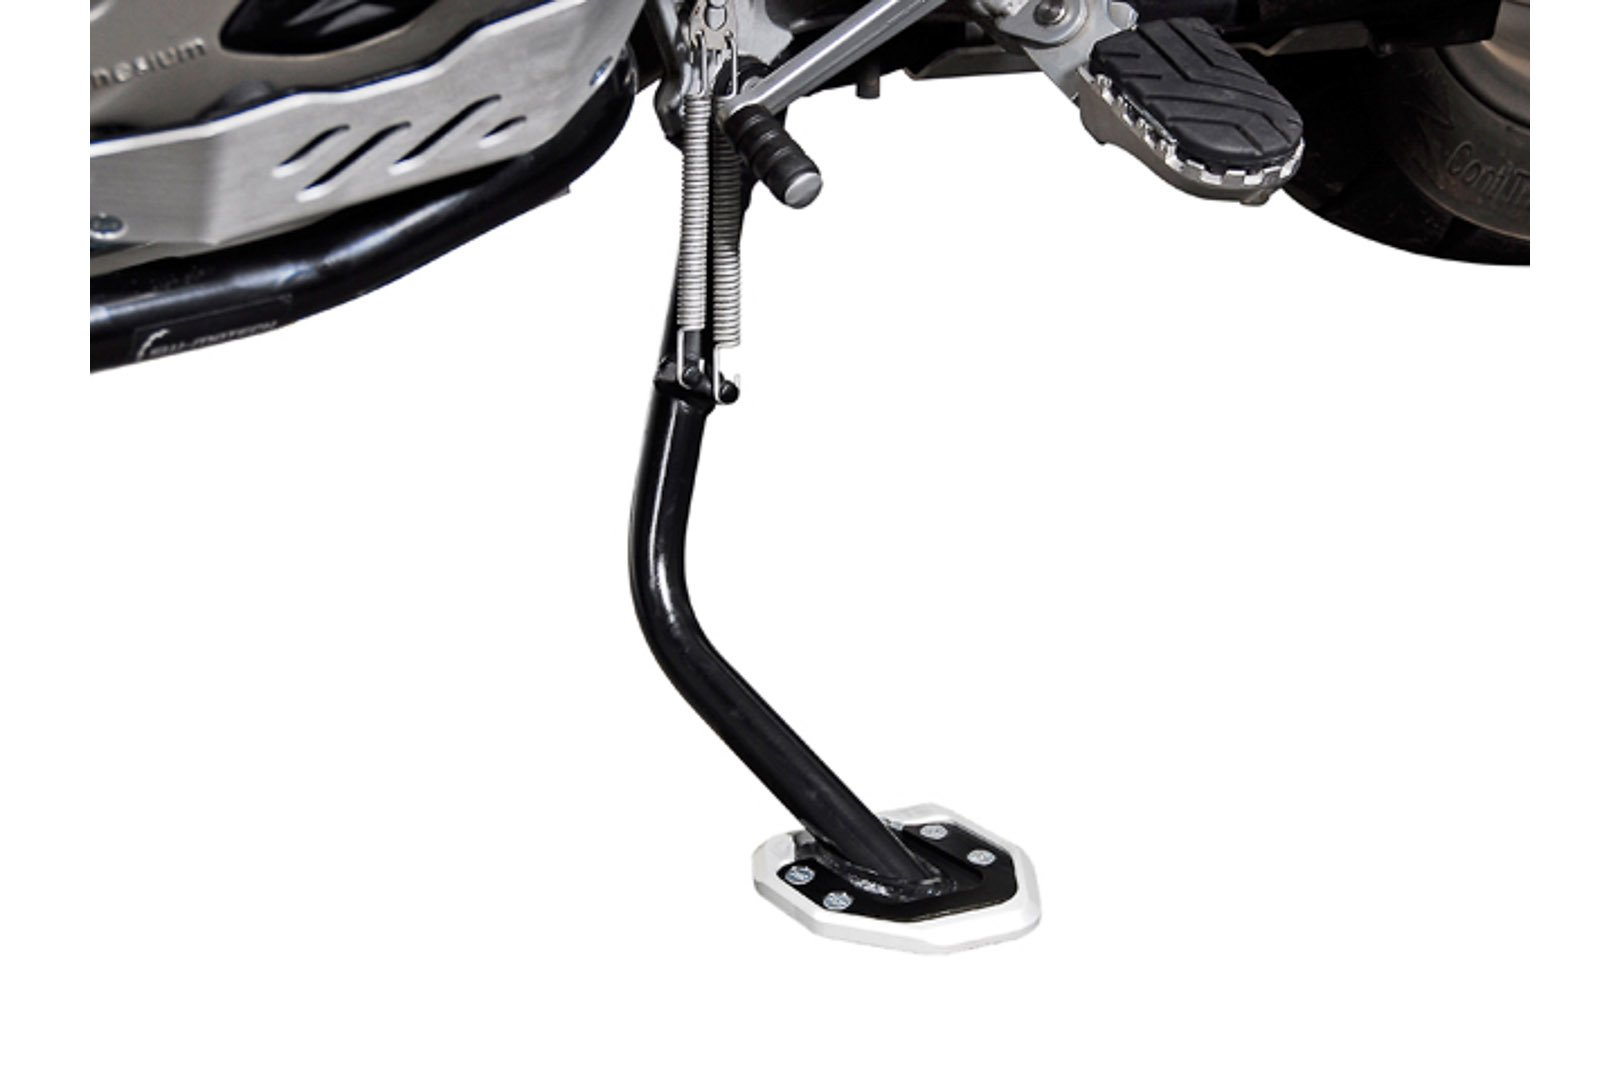 SW-Motech extension for side stand foot (black/silver) BMW R1200GS / R1200GS adventure